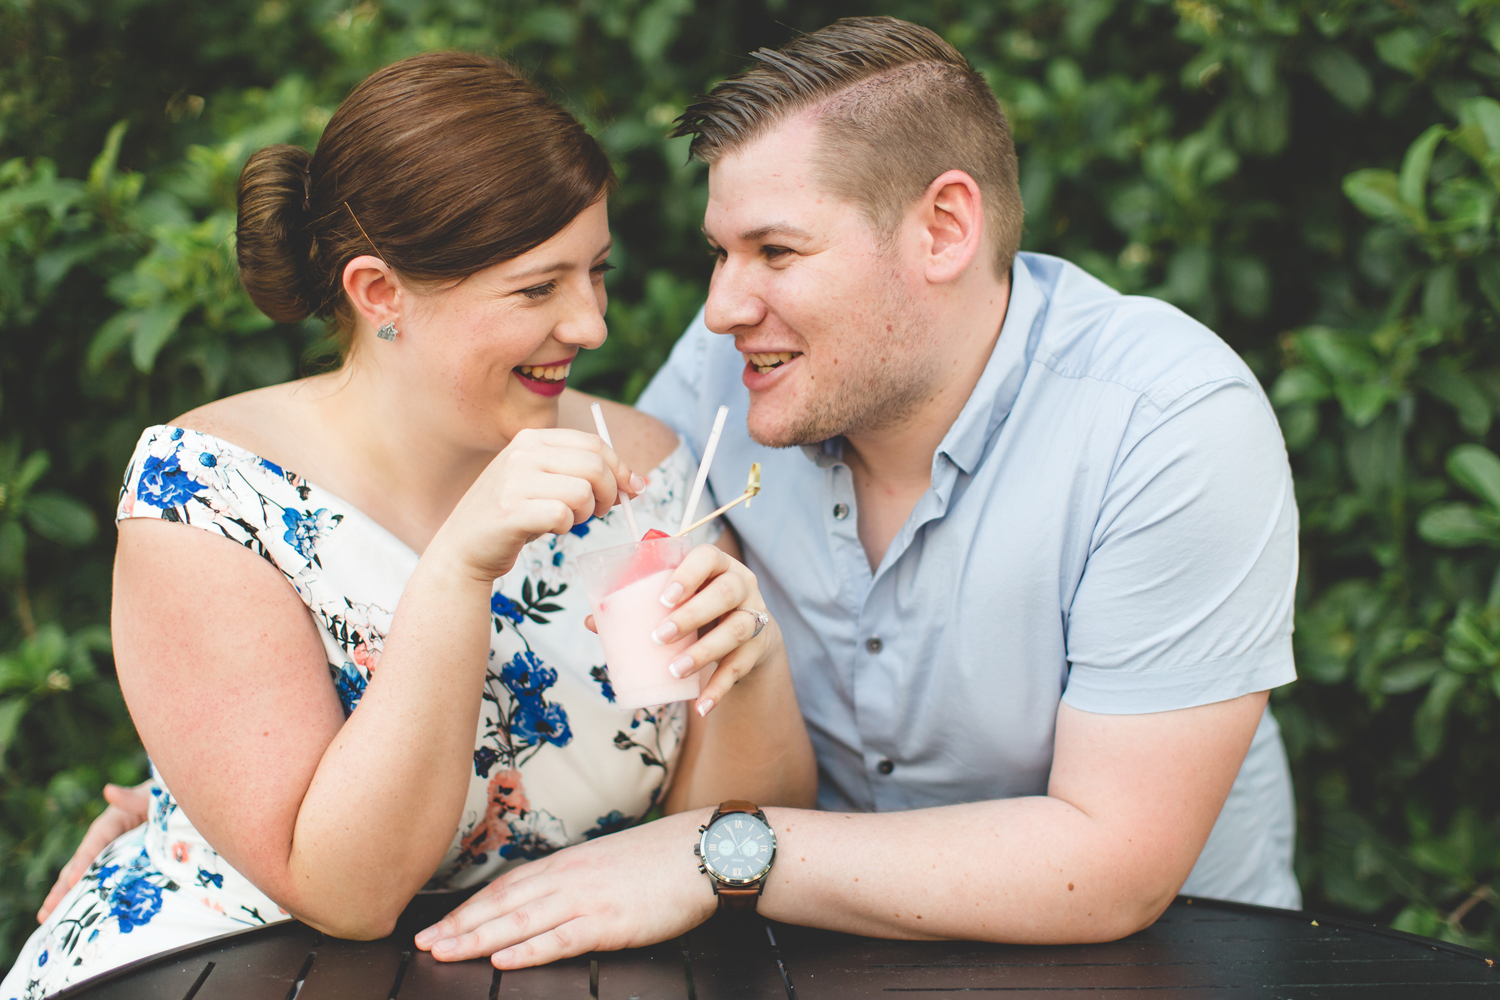 Jaime DiOrio - Disney World Engagement Photo - Orlando Wedding Photographer - Orlando Engagement Photographer - Epcot Engagement session.jpg